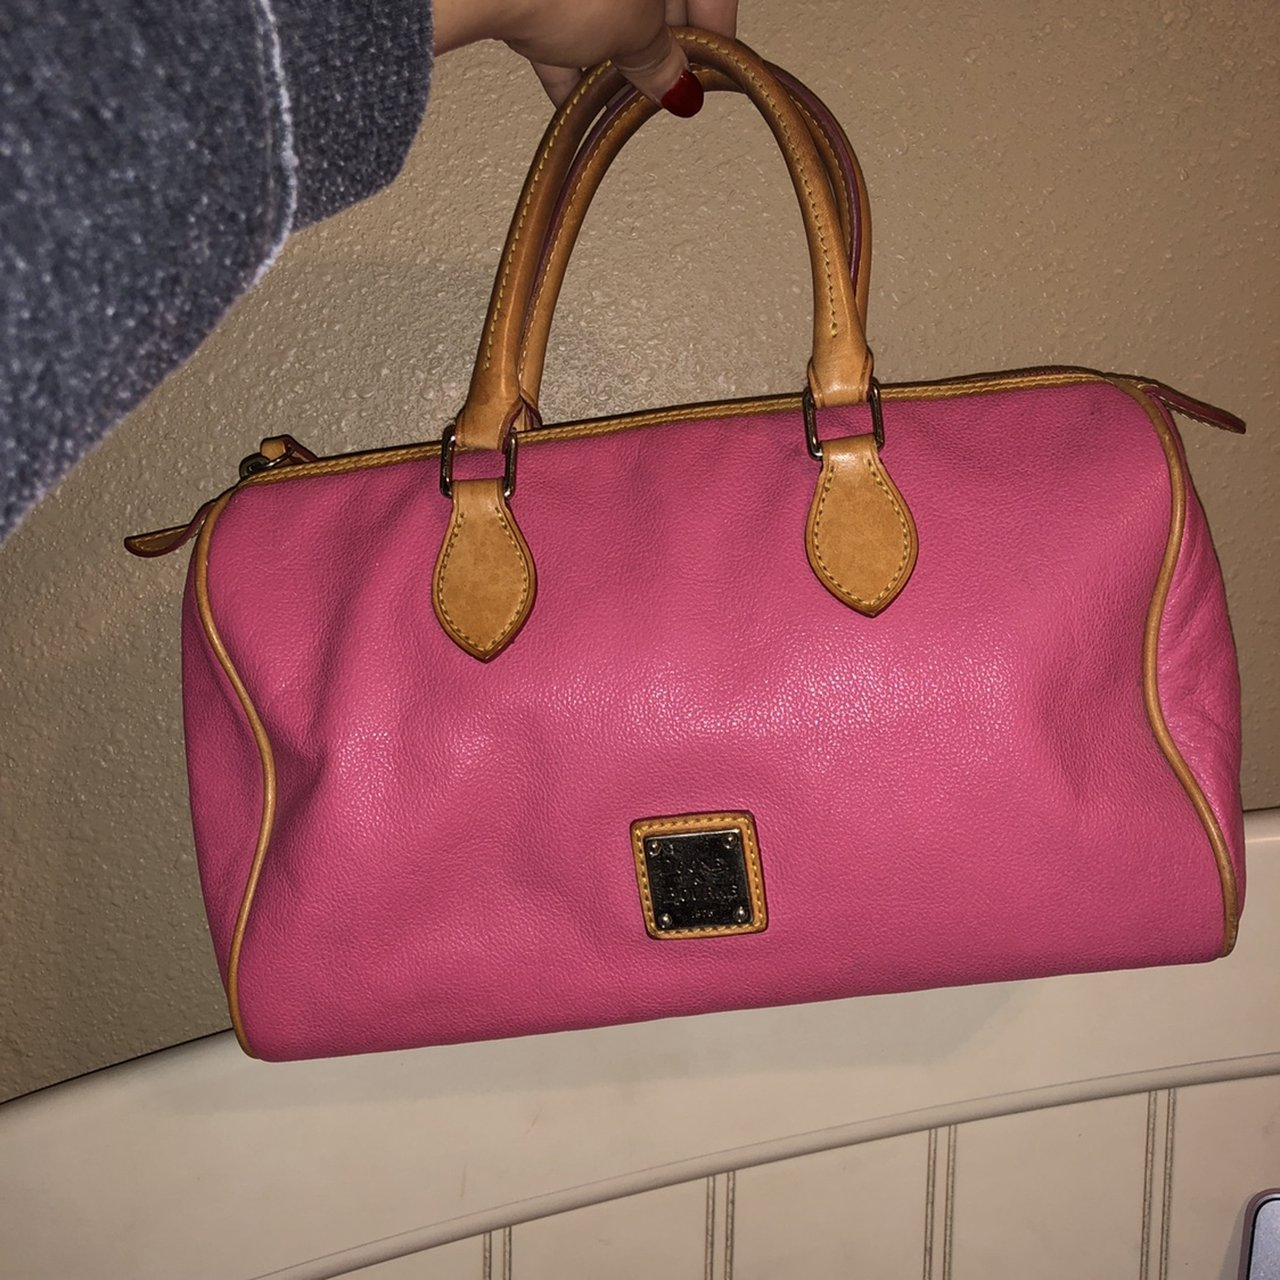 jc apparel. 2 months ago. United States. authentic vintage looking Dooney  and Bourke purse. eed306fe1ef9d